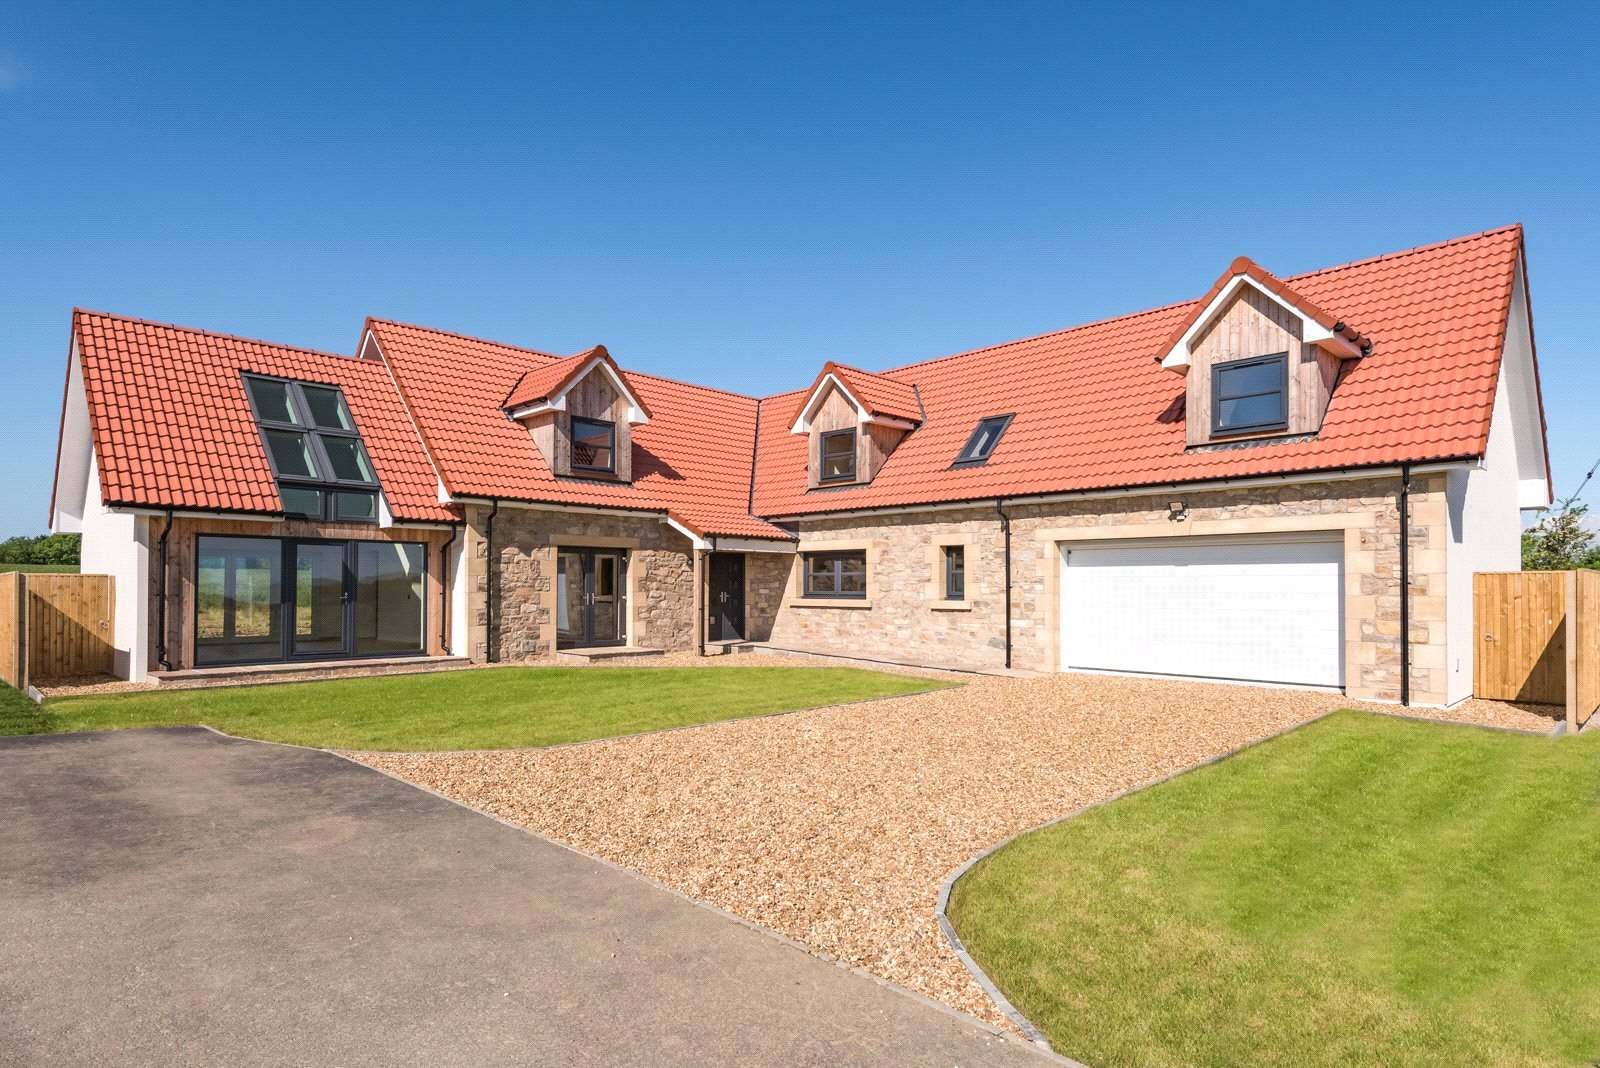 5 Bedrooms Detached House for sale in Beley Bridge House 2, Beley Bridge, St. Andrews, Fife, KY16